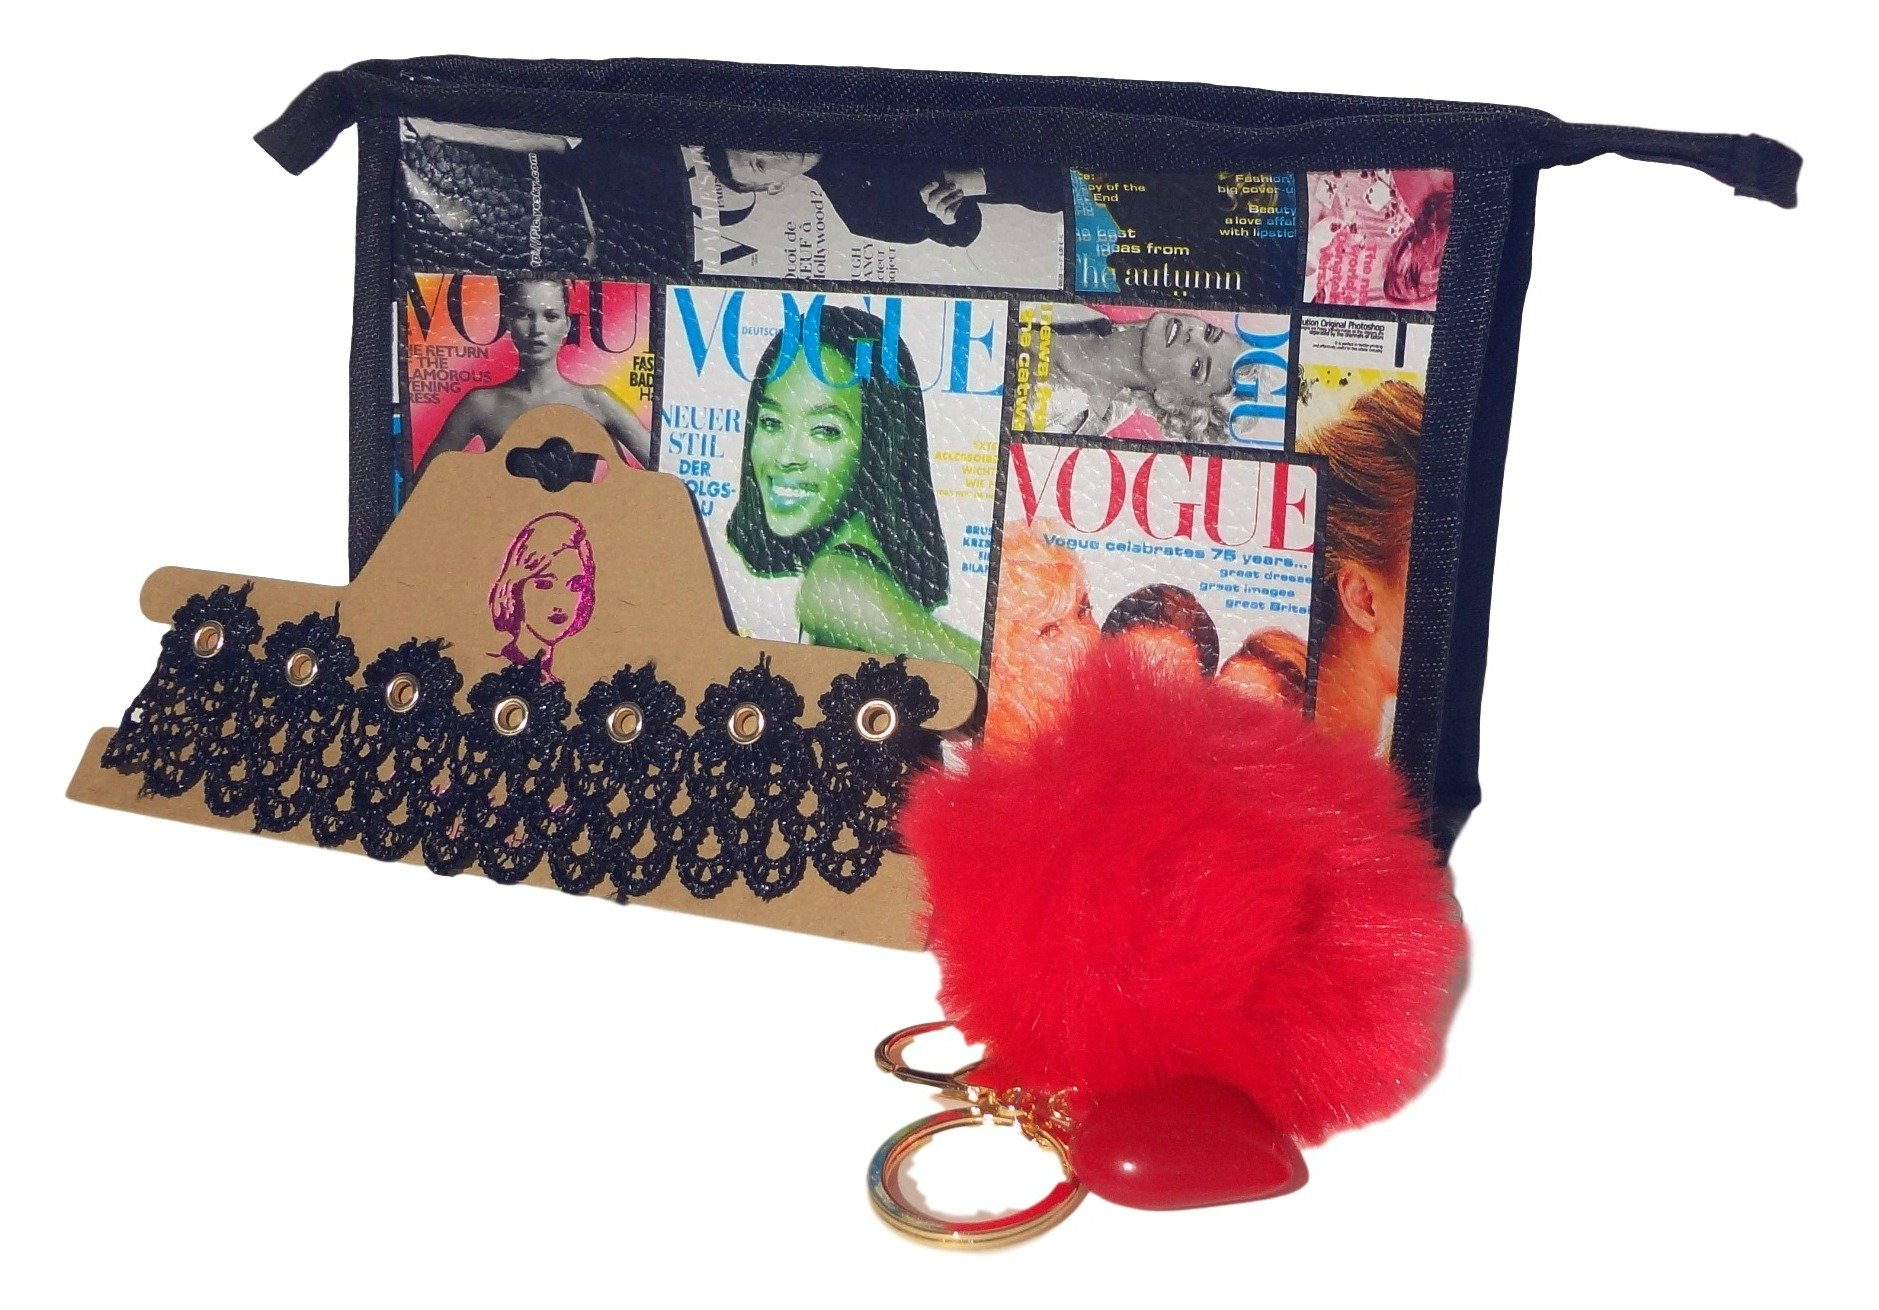 Sale Best 3 Piece Red New Trendy Fur Pom Pom Keychain Lace Choker Necklace Magazine Cover Cosmetic Bag Great Fun Clever Top New 8th Grade School Gift Idea Under 20 Dollars Teen Girl Her